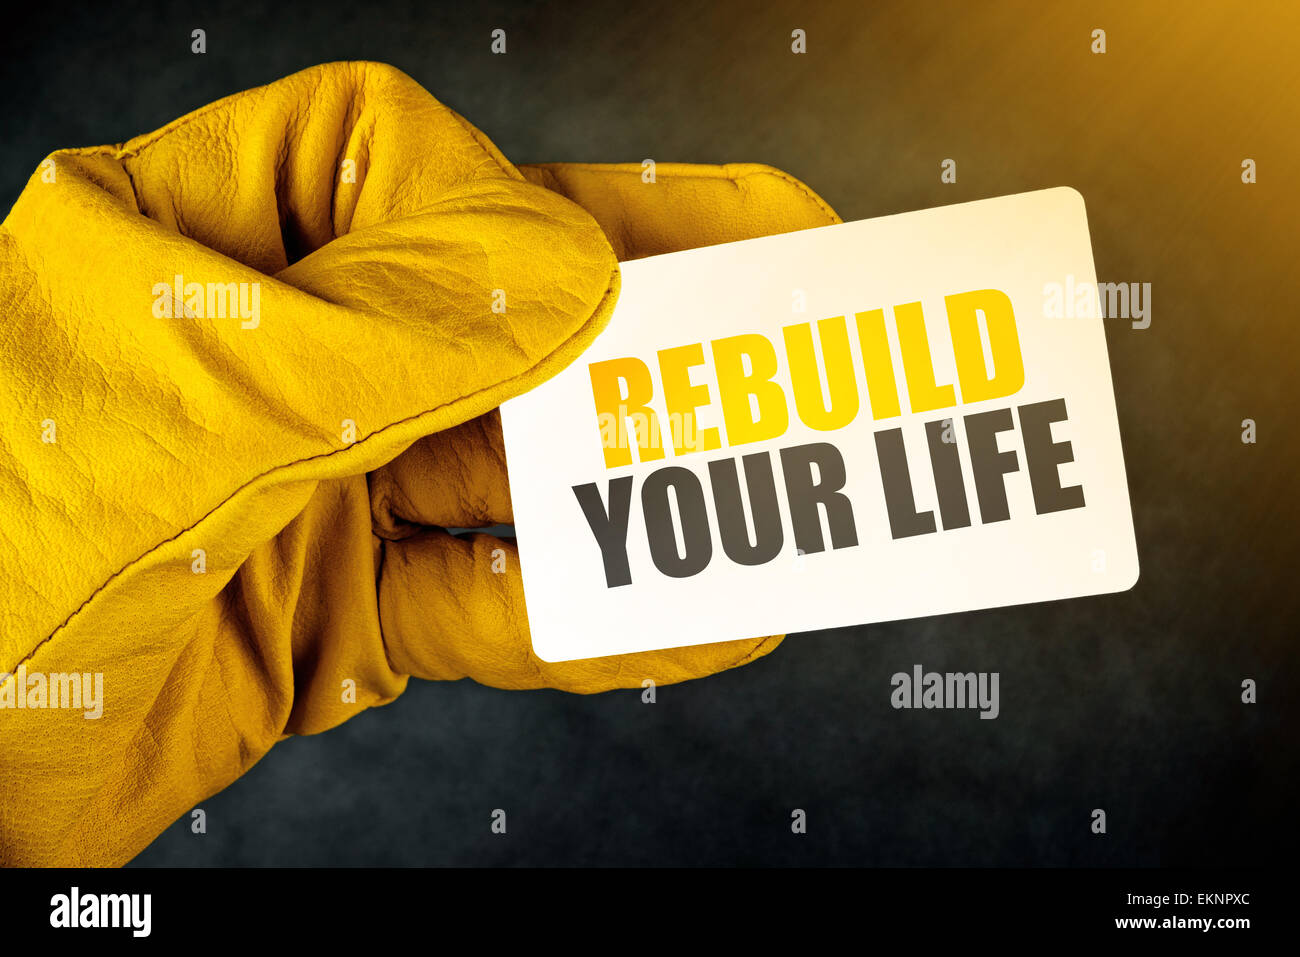 Rebuild Your Life on Business Card, Male Hand in Yellow Leather Construction Working Protective Gloves Holding Card - Stock Image